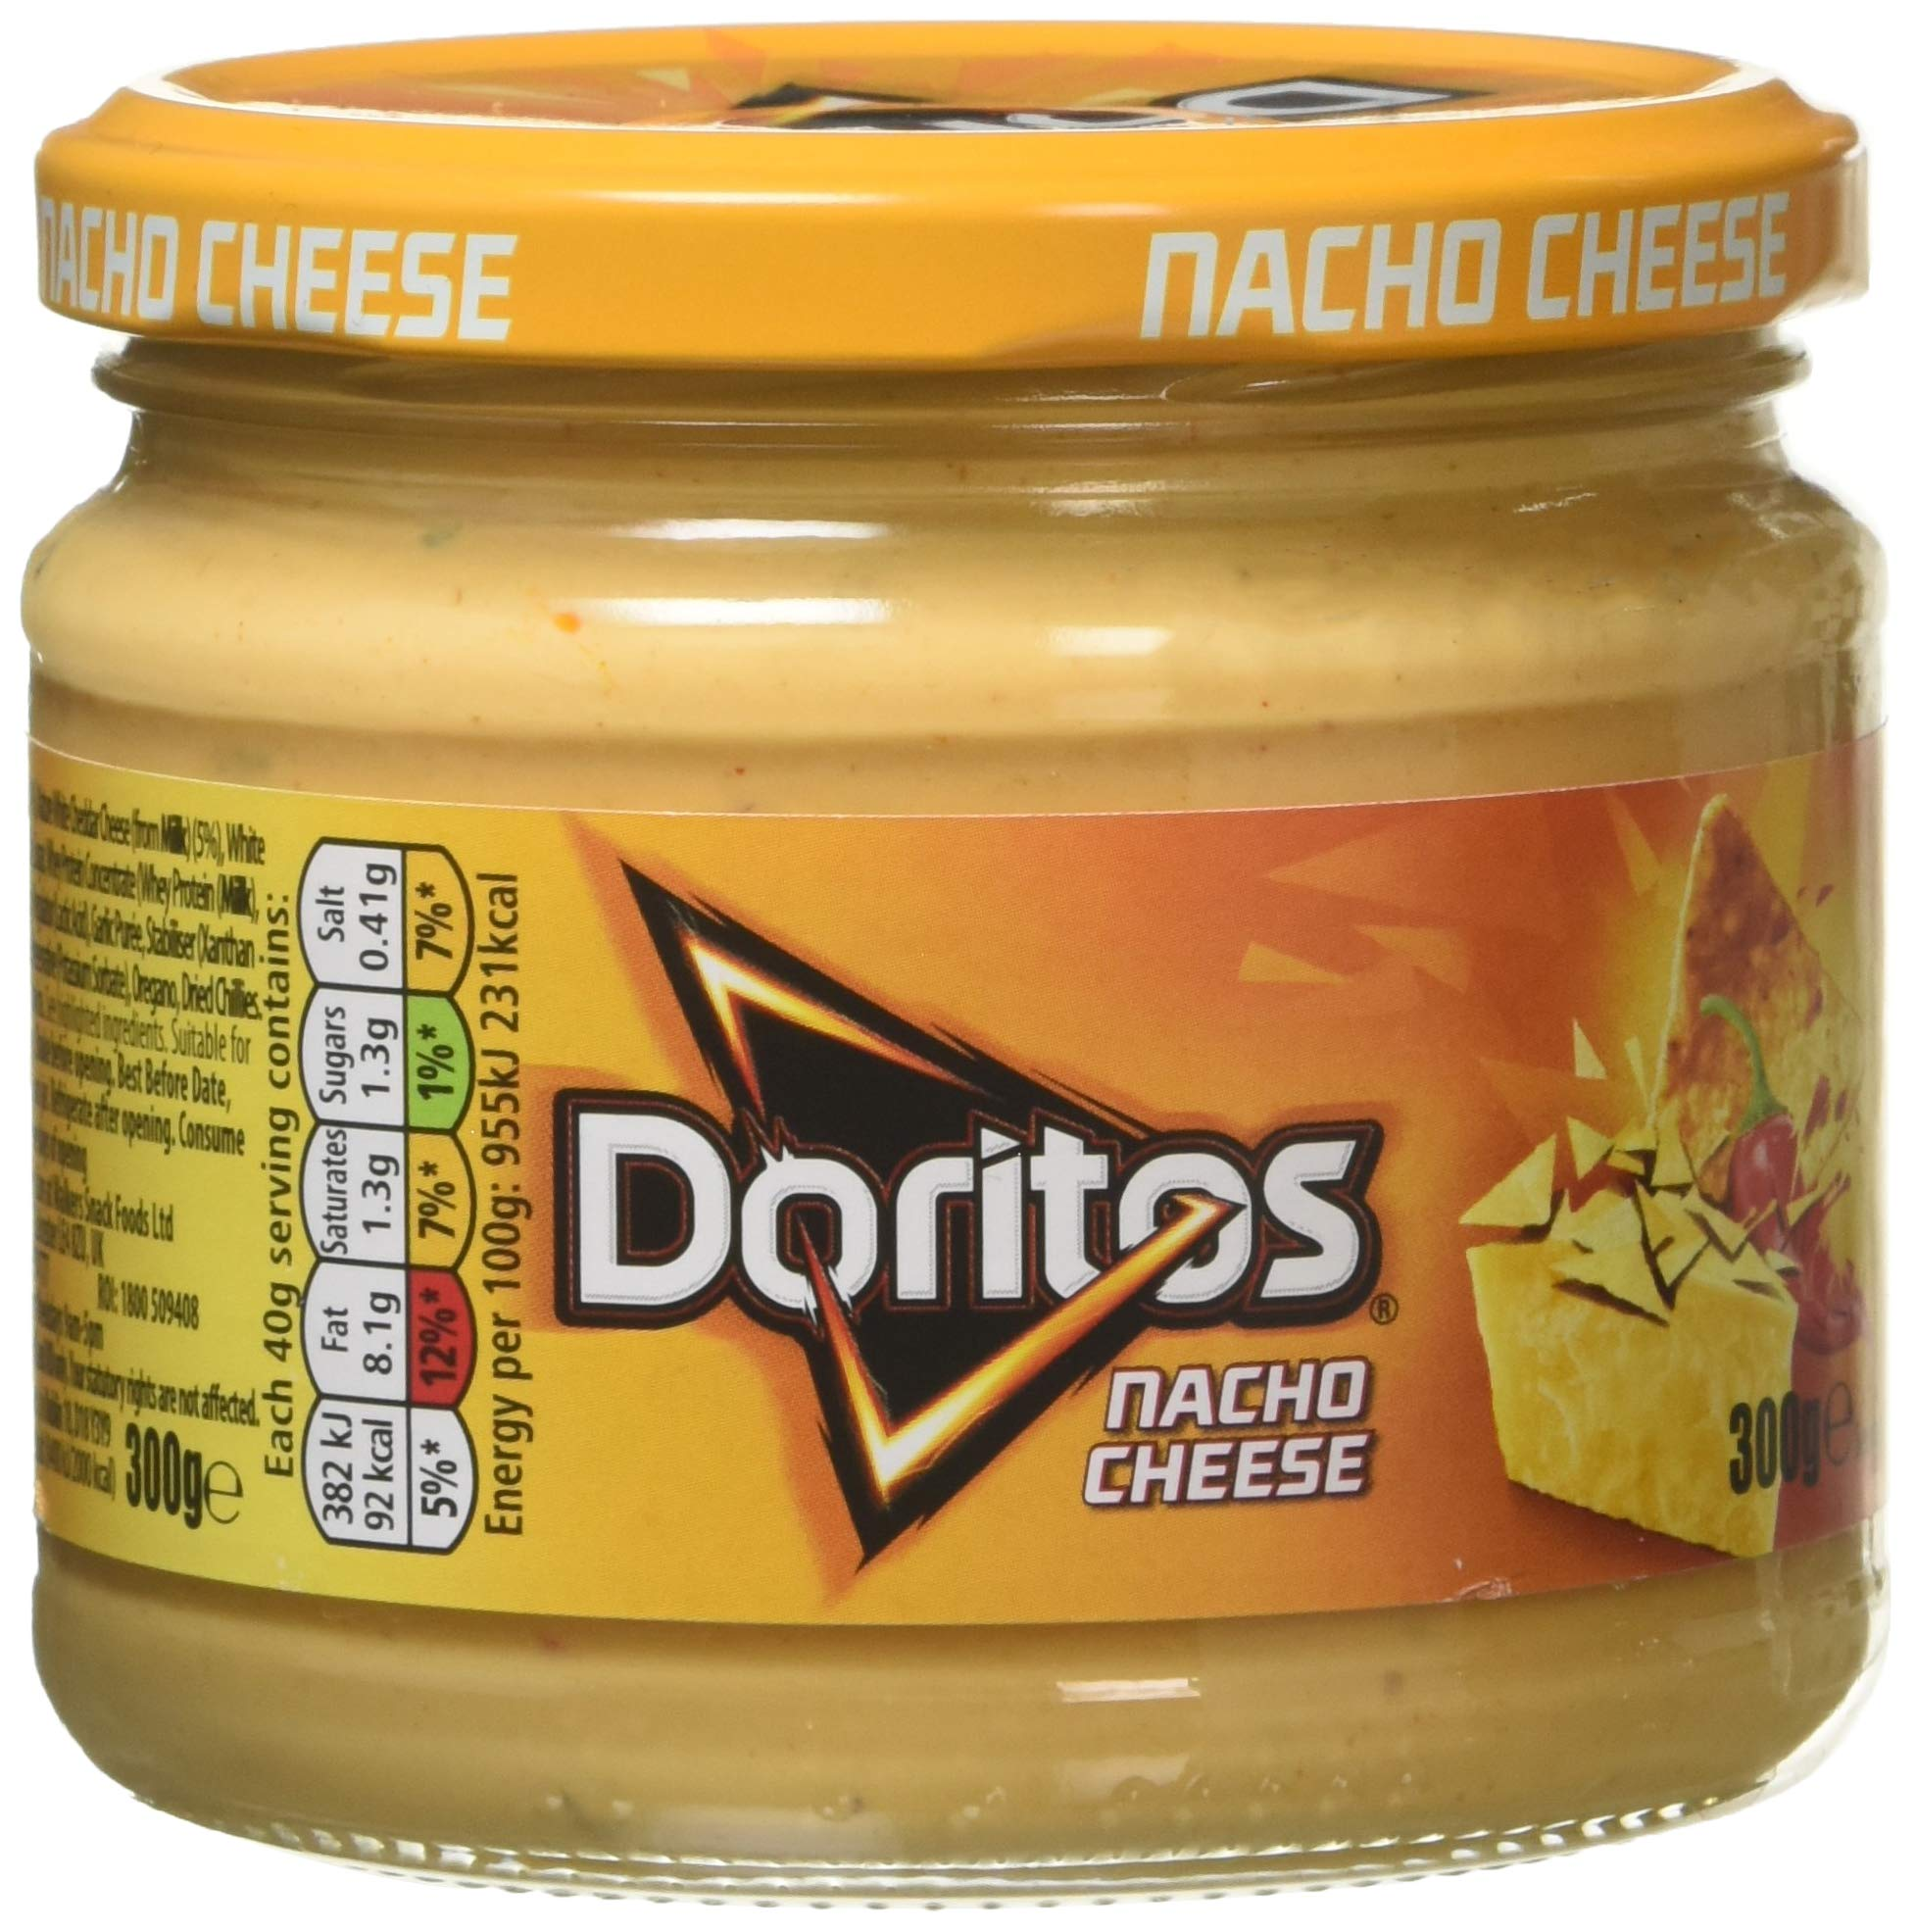 Doritos Nacho Cheese Dips 300 g (Case of 6)